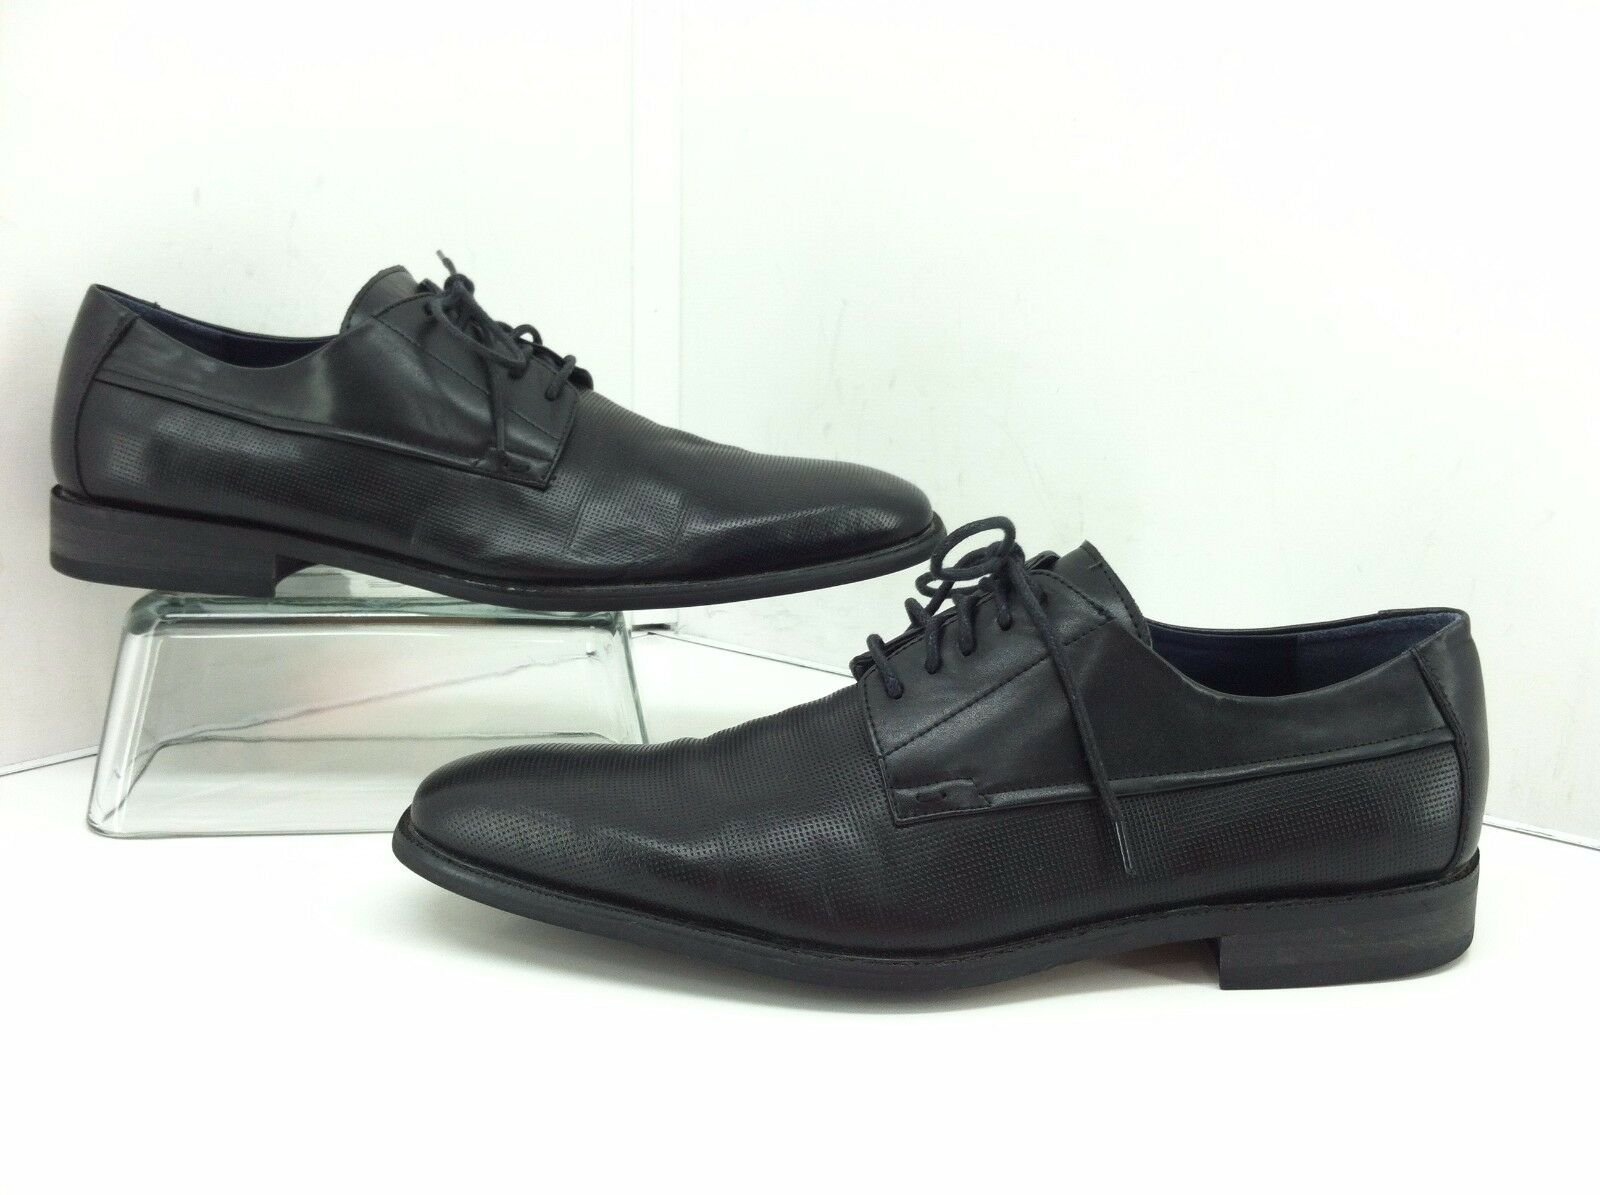 Steve Madden Mens Luuxx Black Leather Perforated Oxfords. Size 11